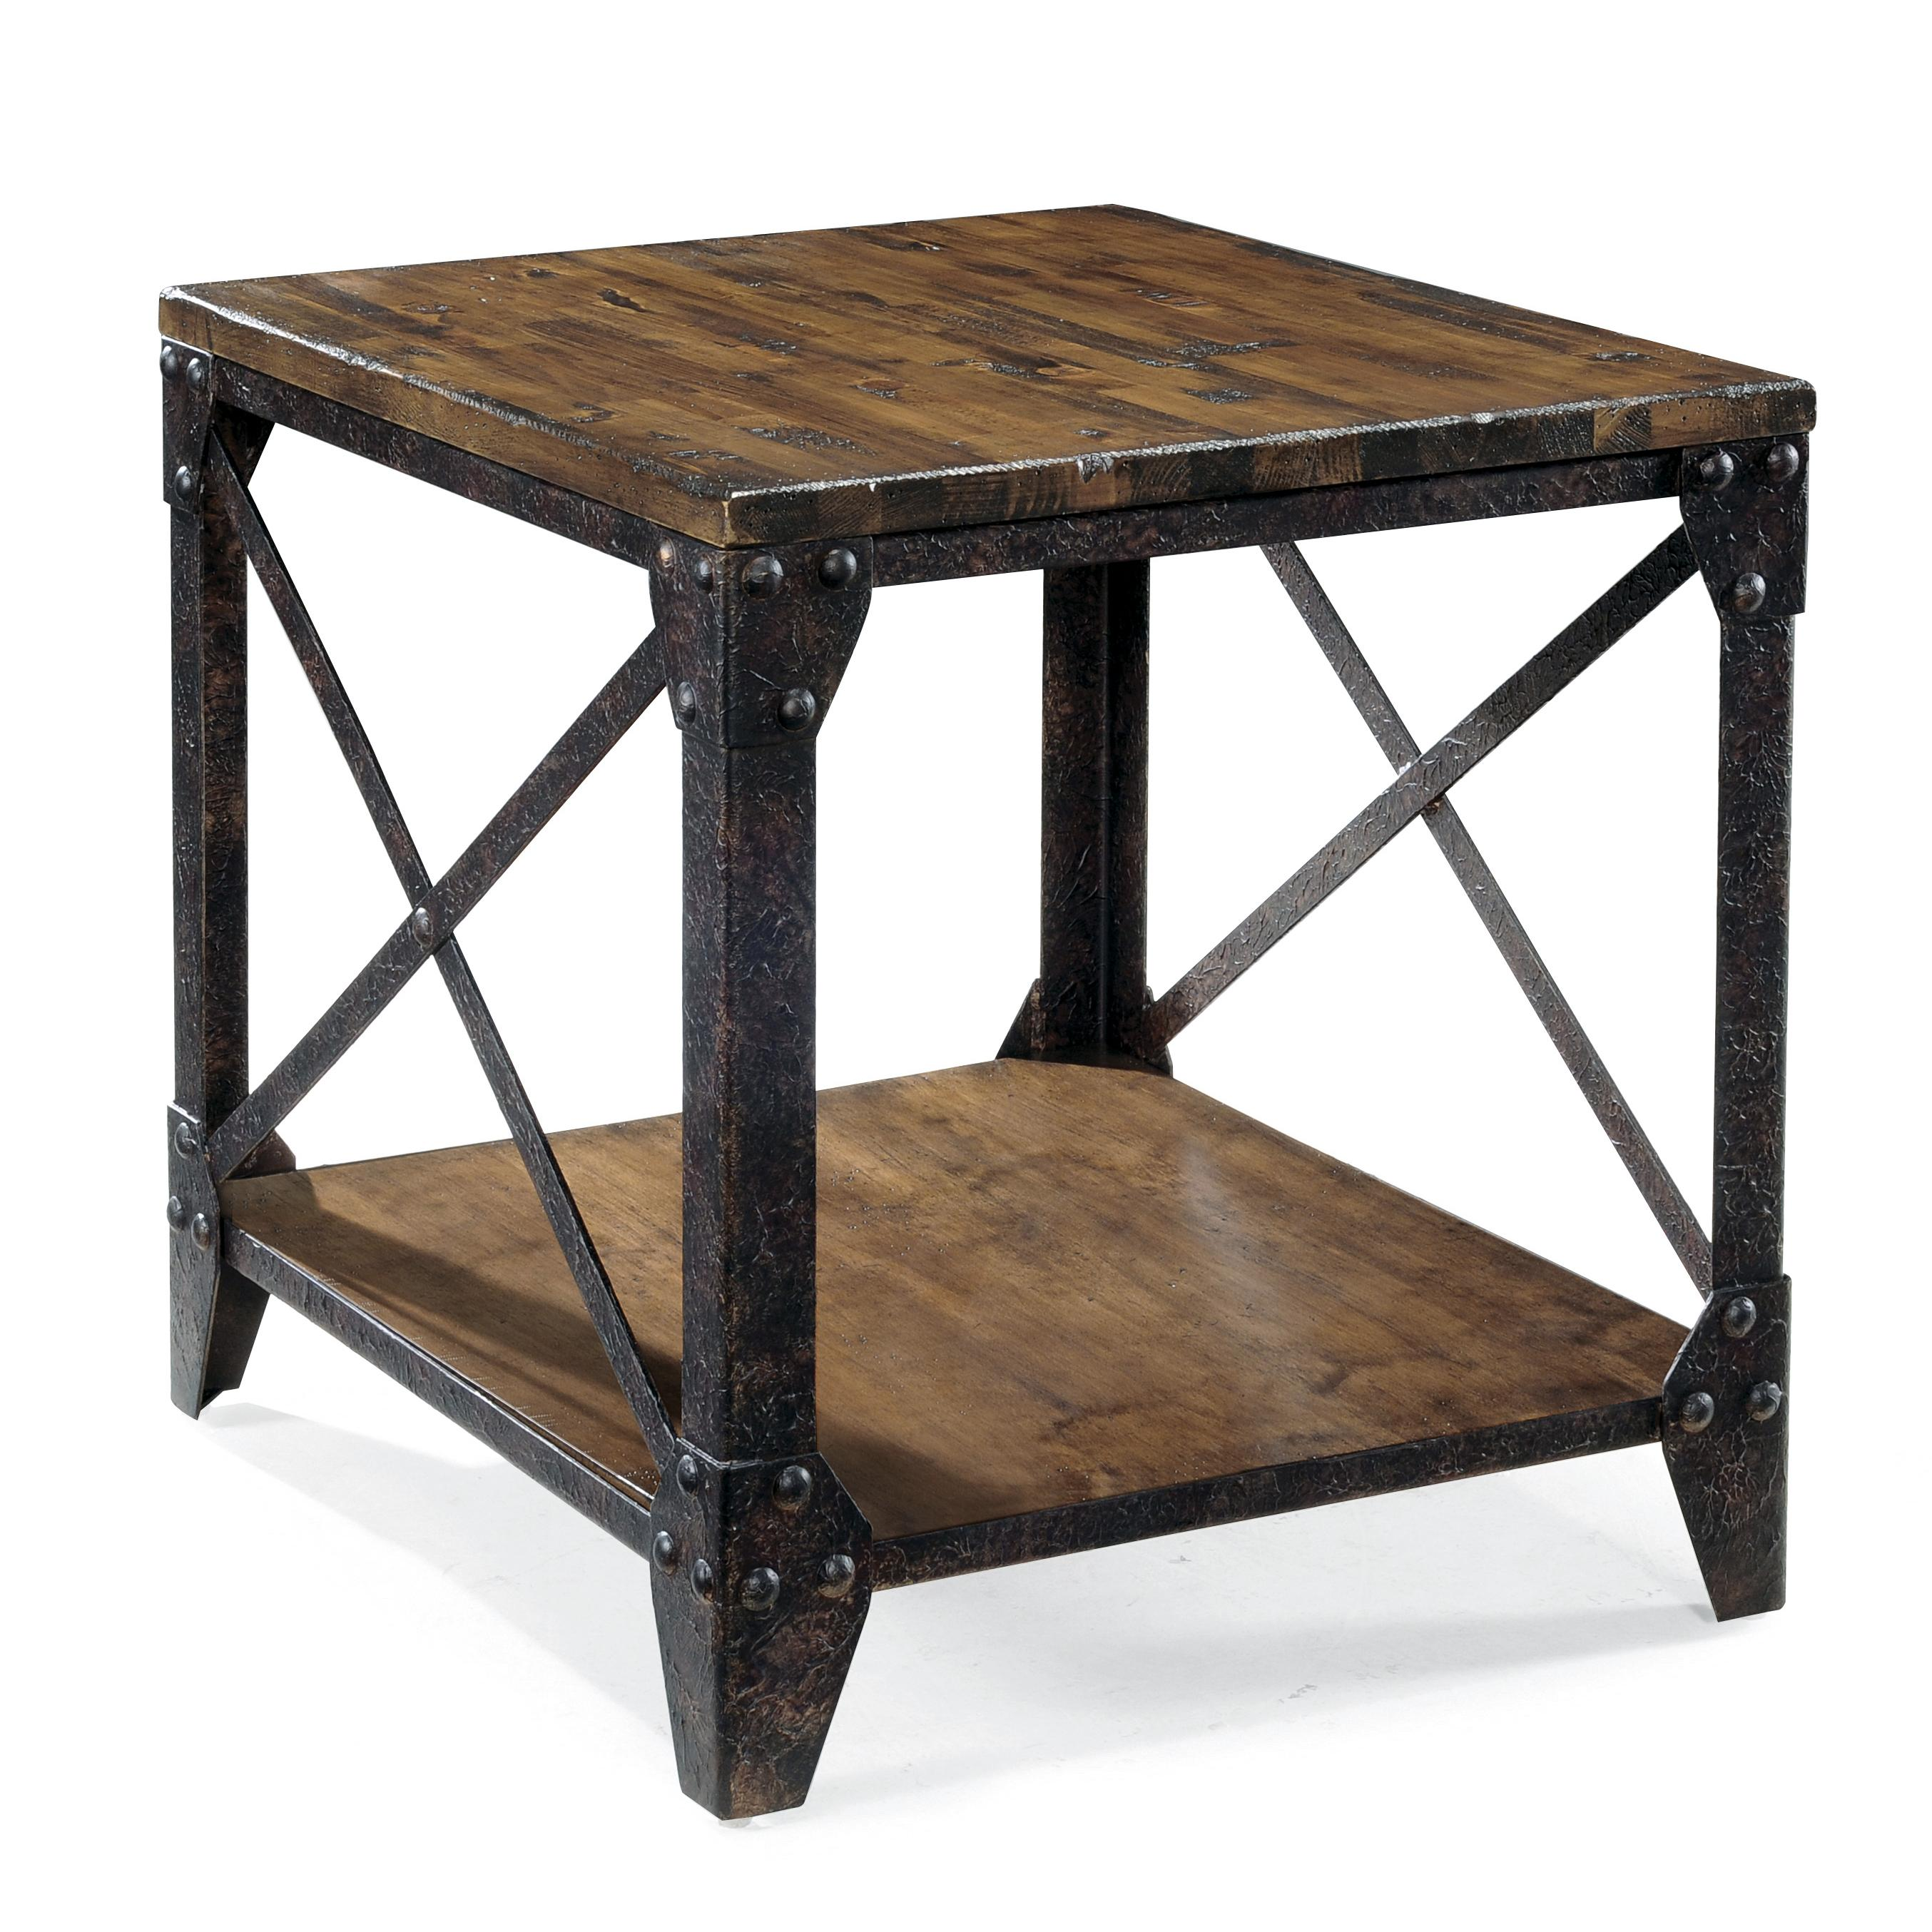 Belfort Select Pinebrook Rectangular End Table - Item Number: T1755-03